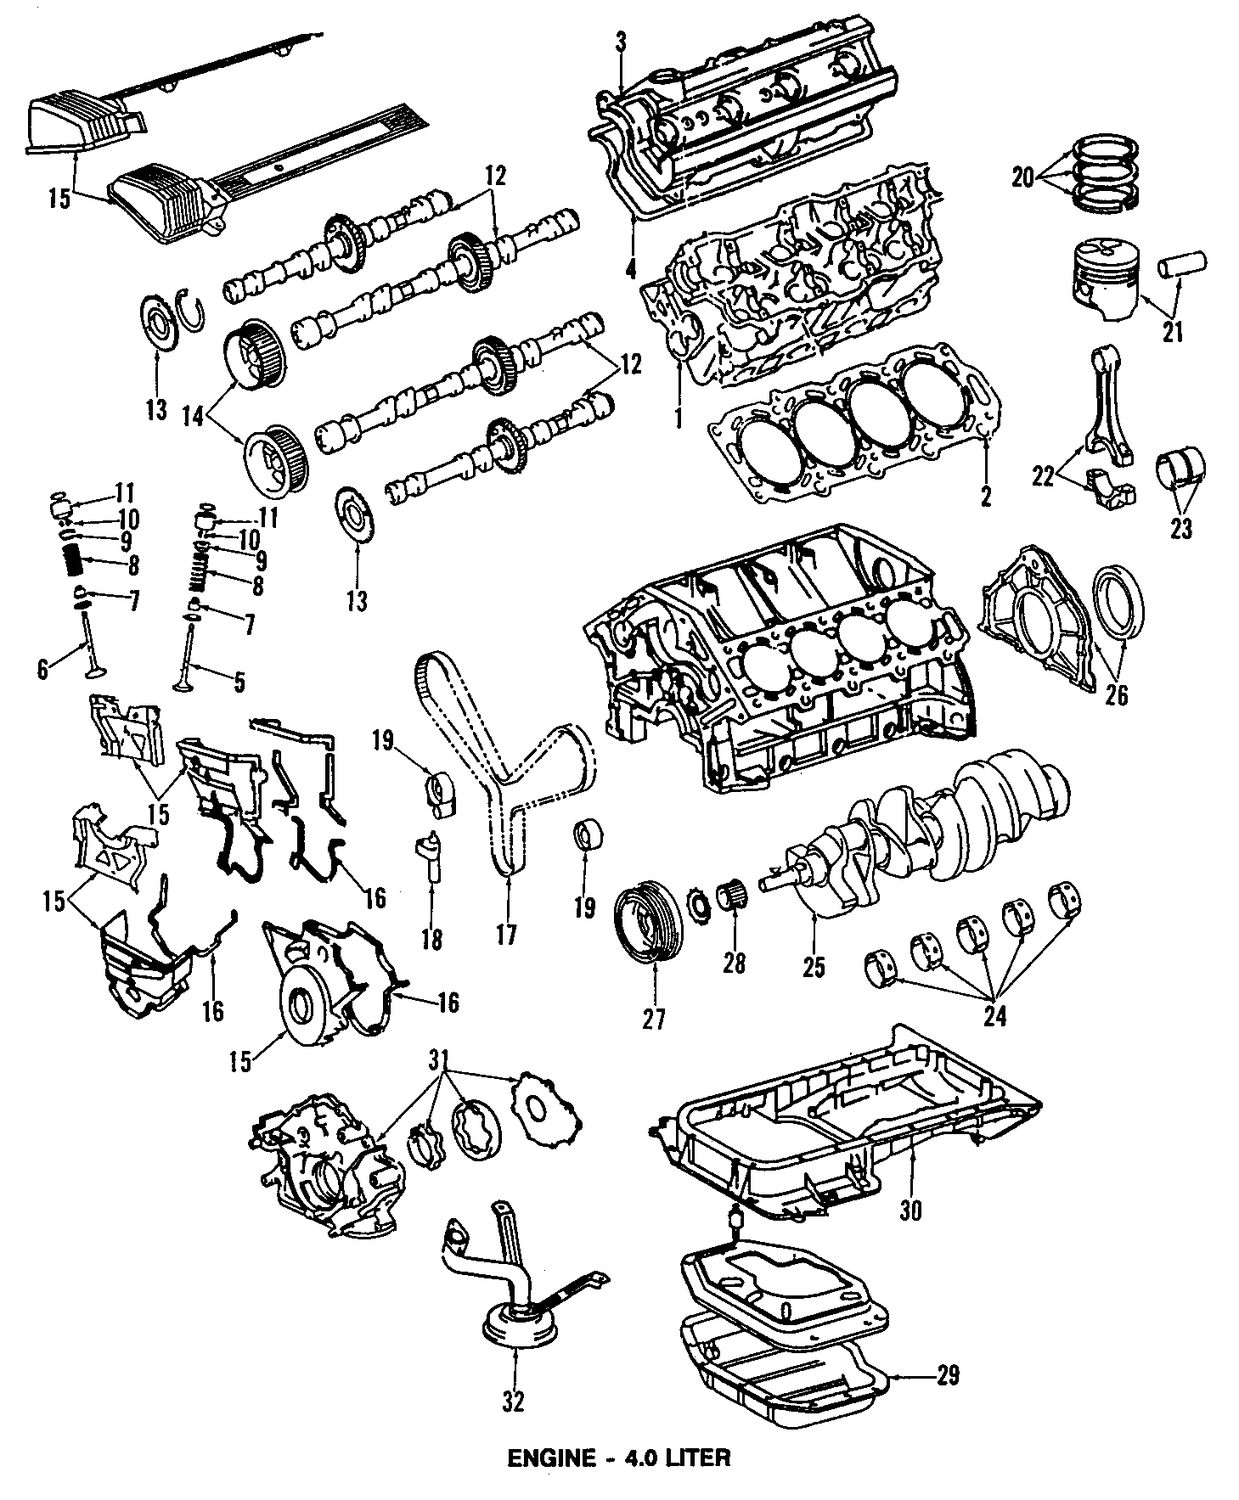 hight resolution of 2001 lexus is300 engine diagram wiring diagram schematics 2000 lexus rx300 engine diagram gs400 engine diagram